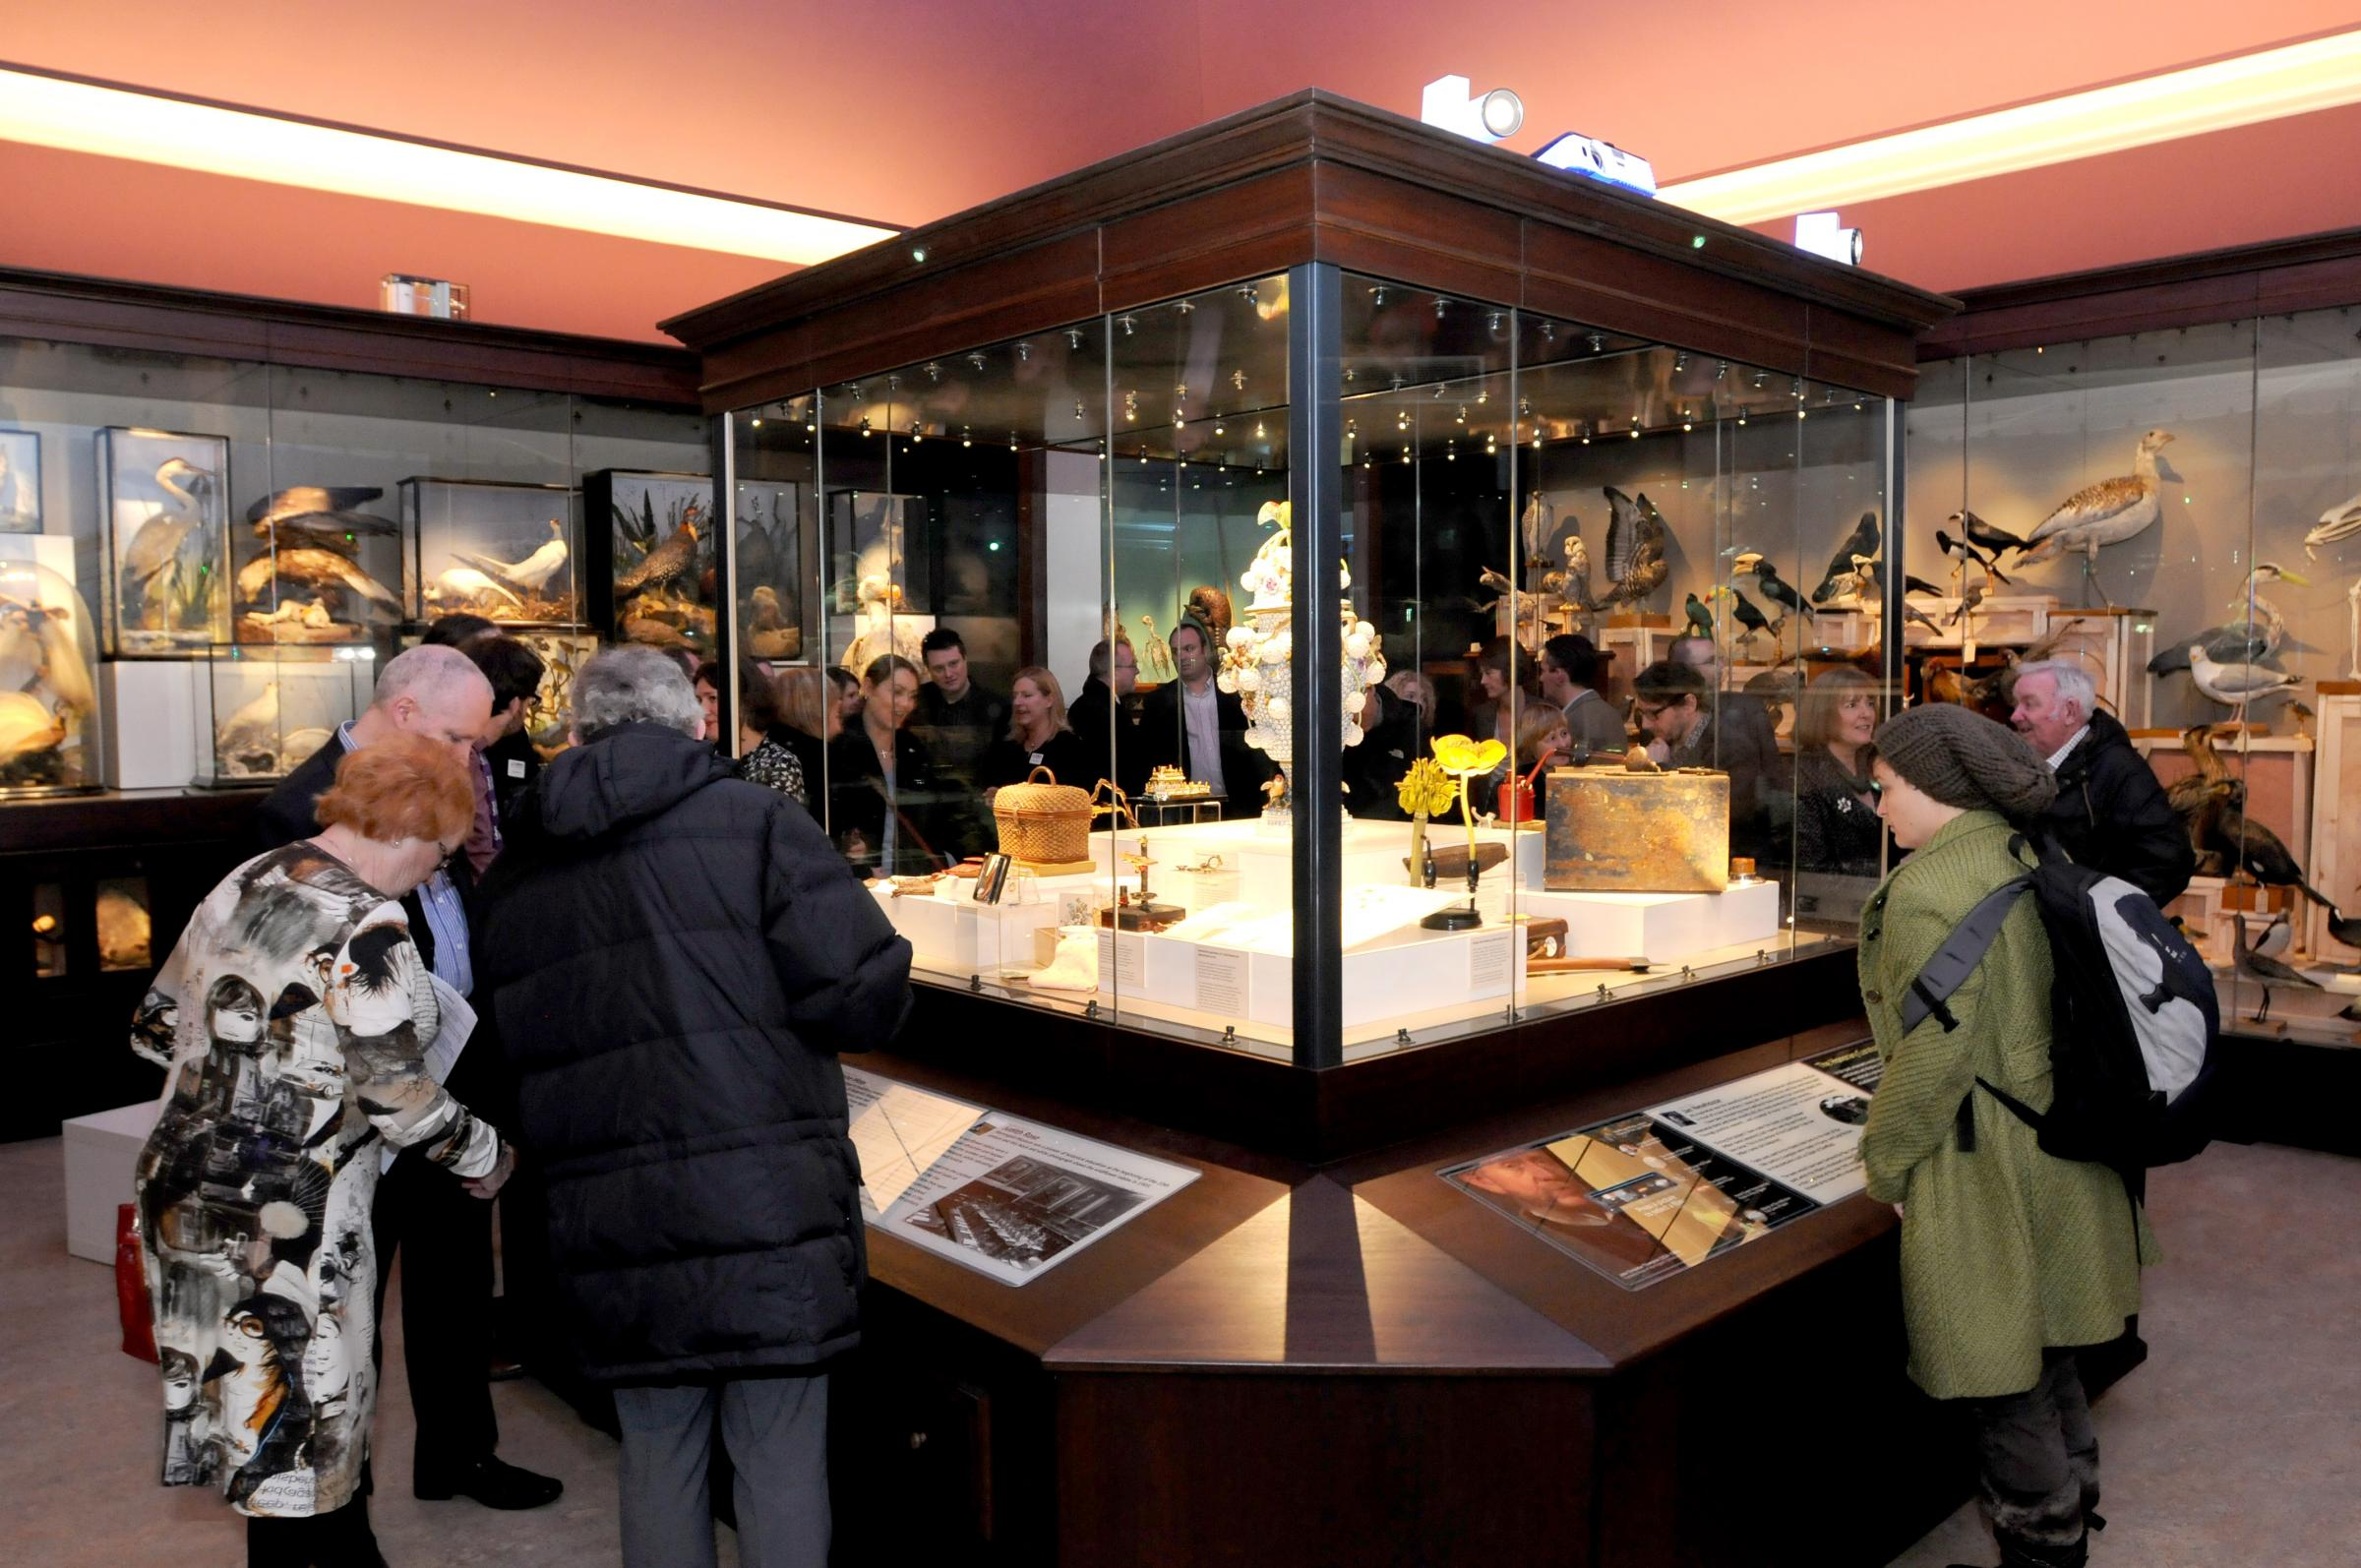 Warrington Museum's 'Cabinet of Curiosities' opens to public after £672k refurb